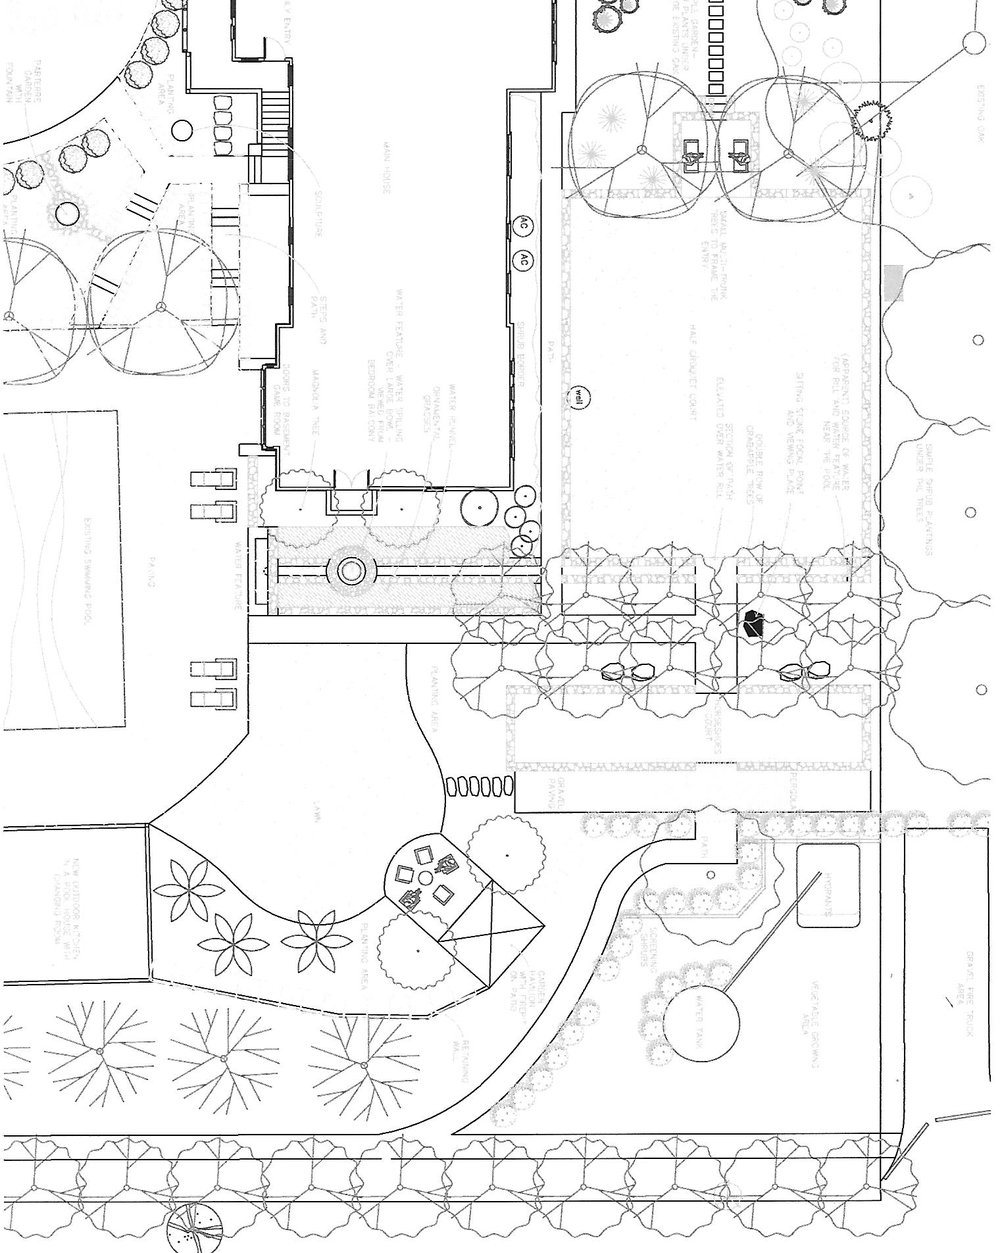 Sample Fun Garden Plan.jpg